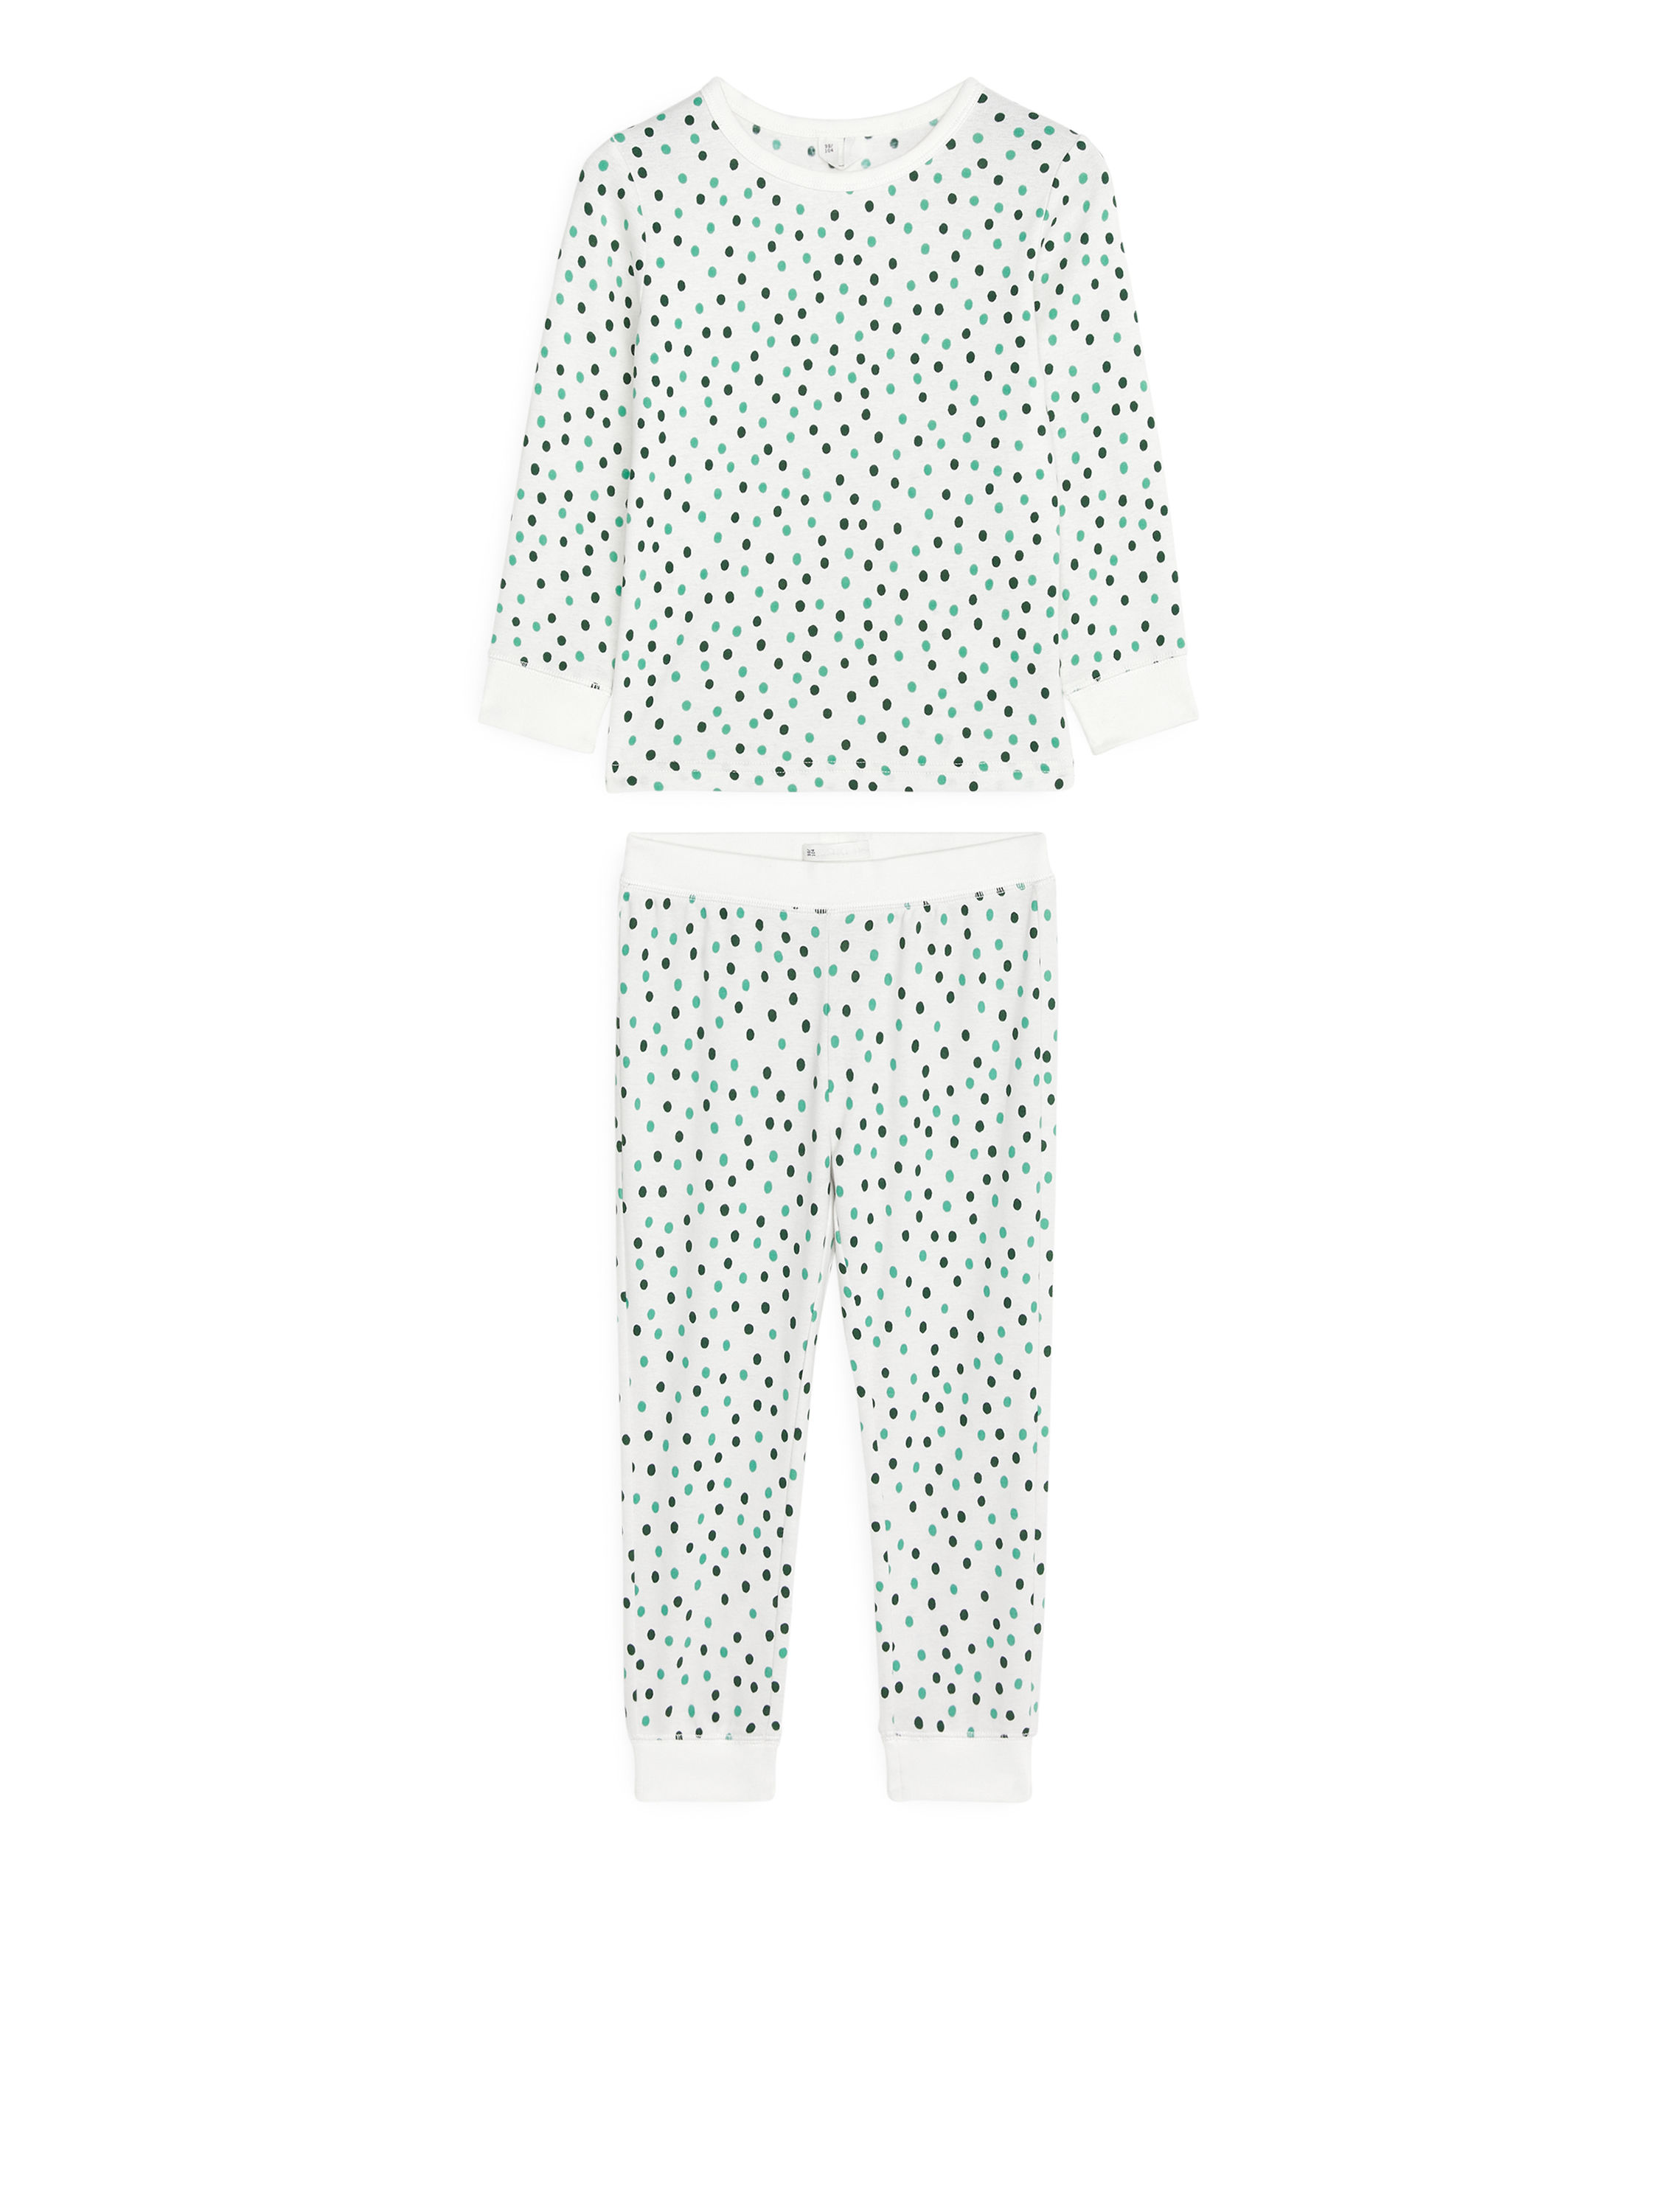 Fabric Swatch image of Arket jersey pyjama set in green